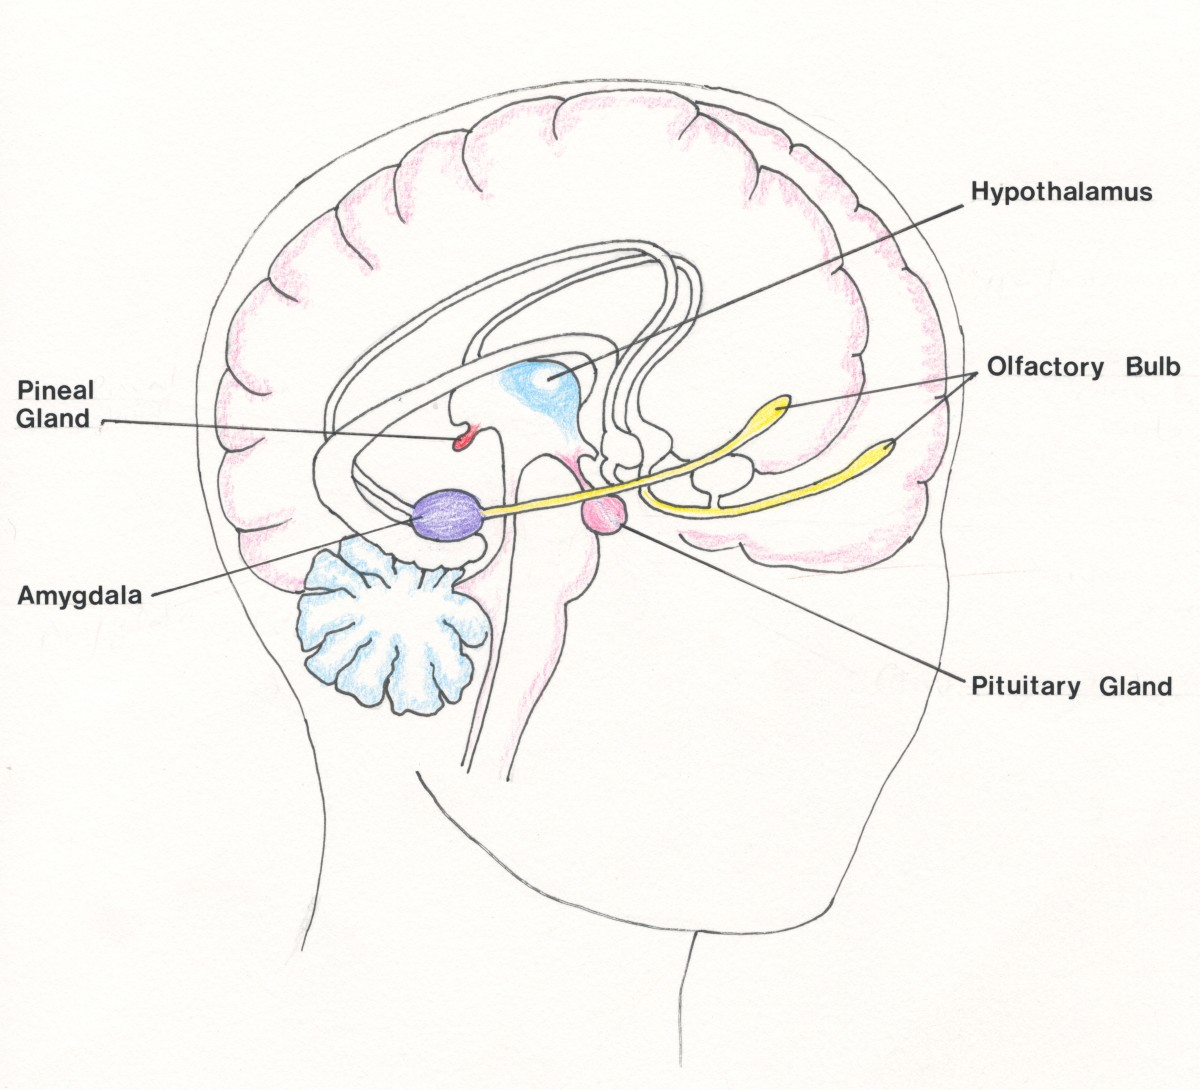 The Hypothalamus and Amygdala:  Artwork by S.P. Austen